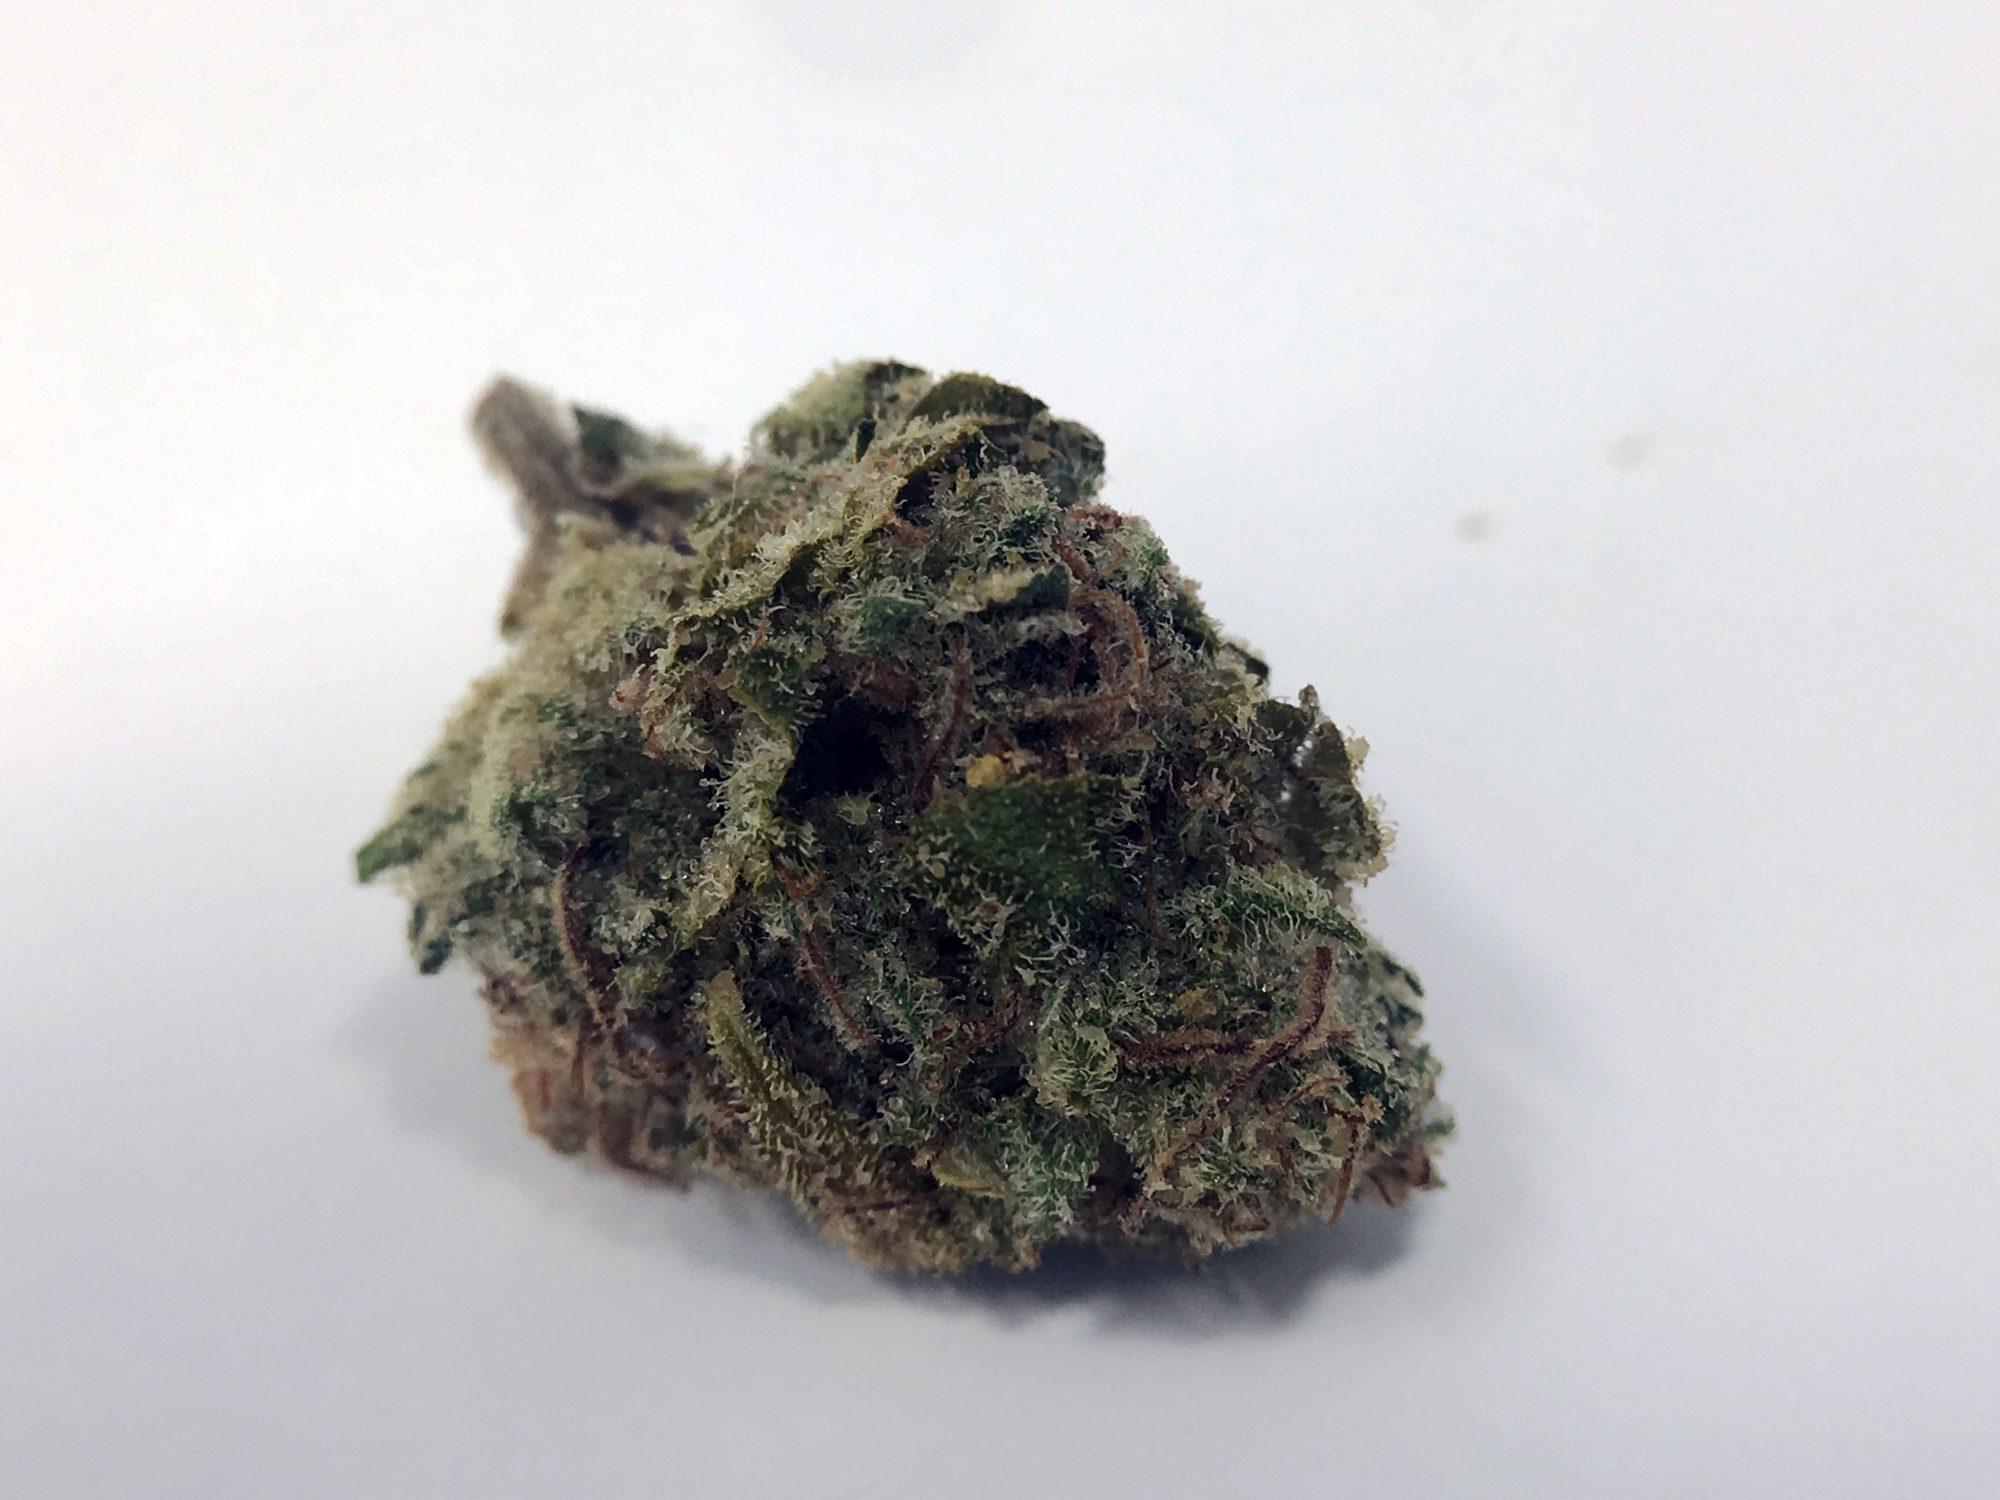 Tahoe OG, Tahoe OG Cannabis Strain Information & Review